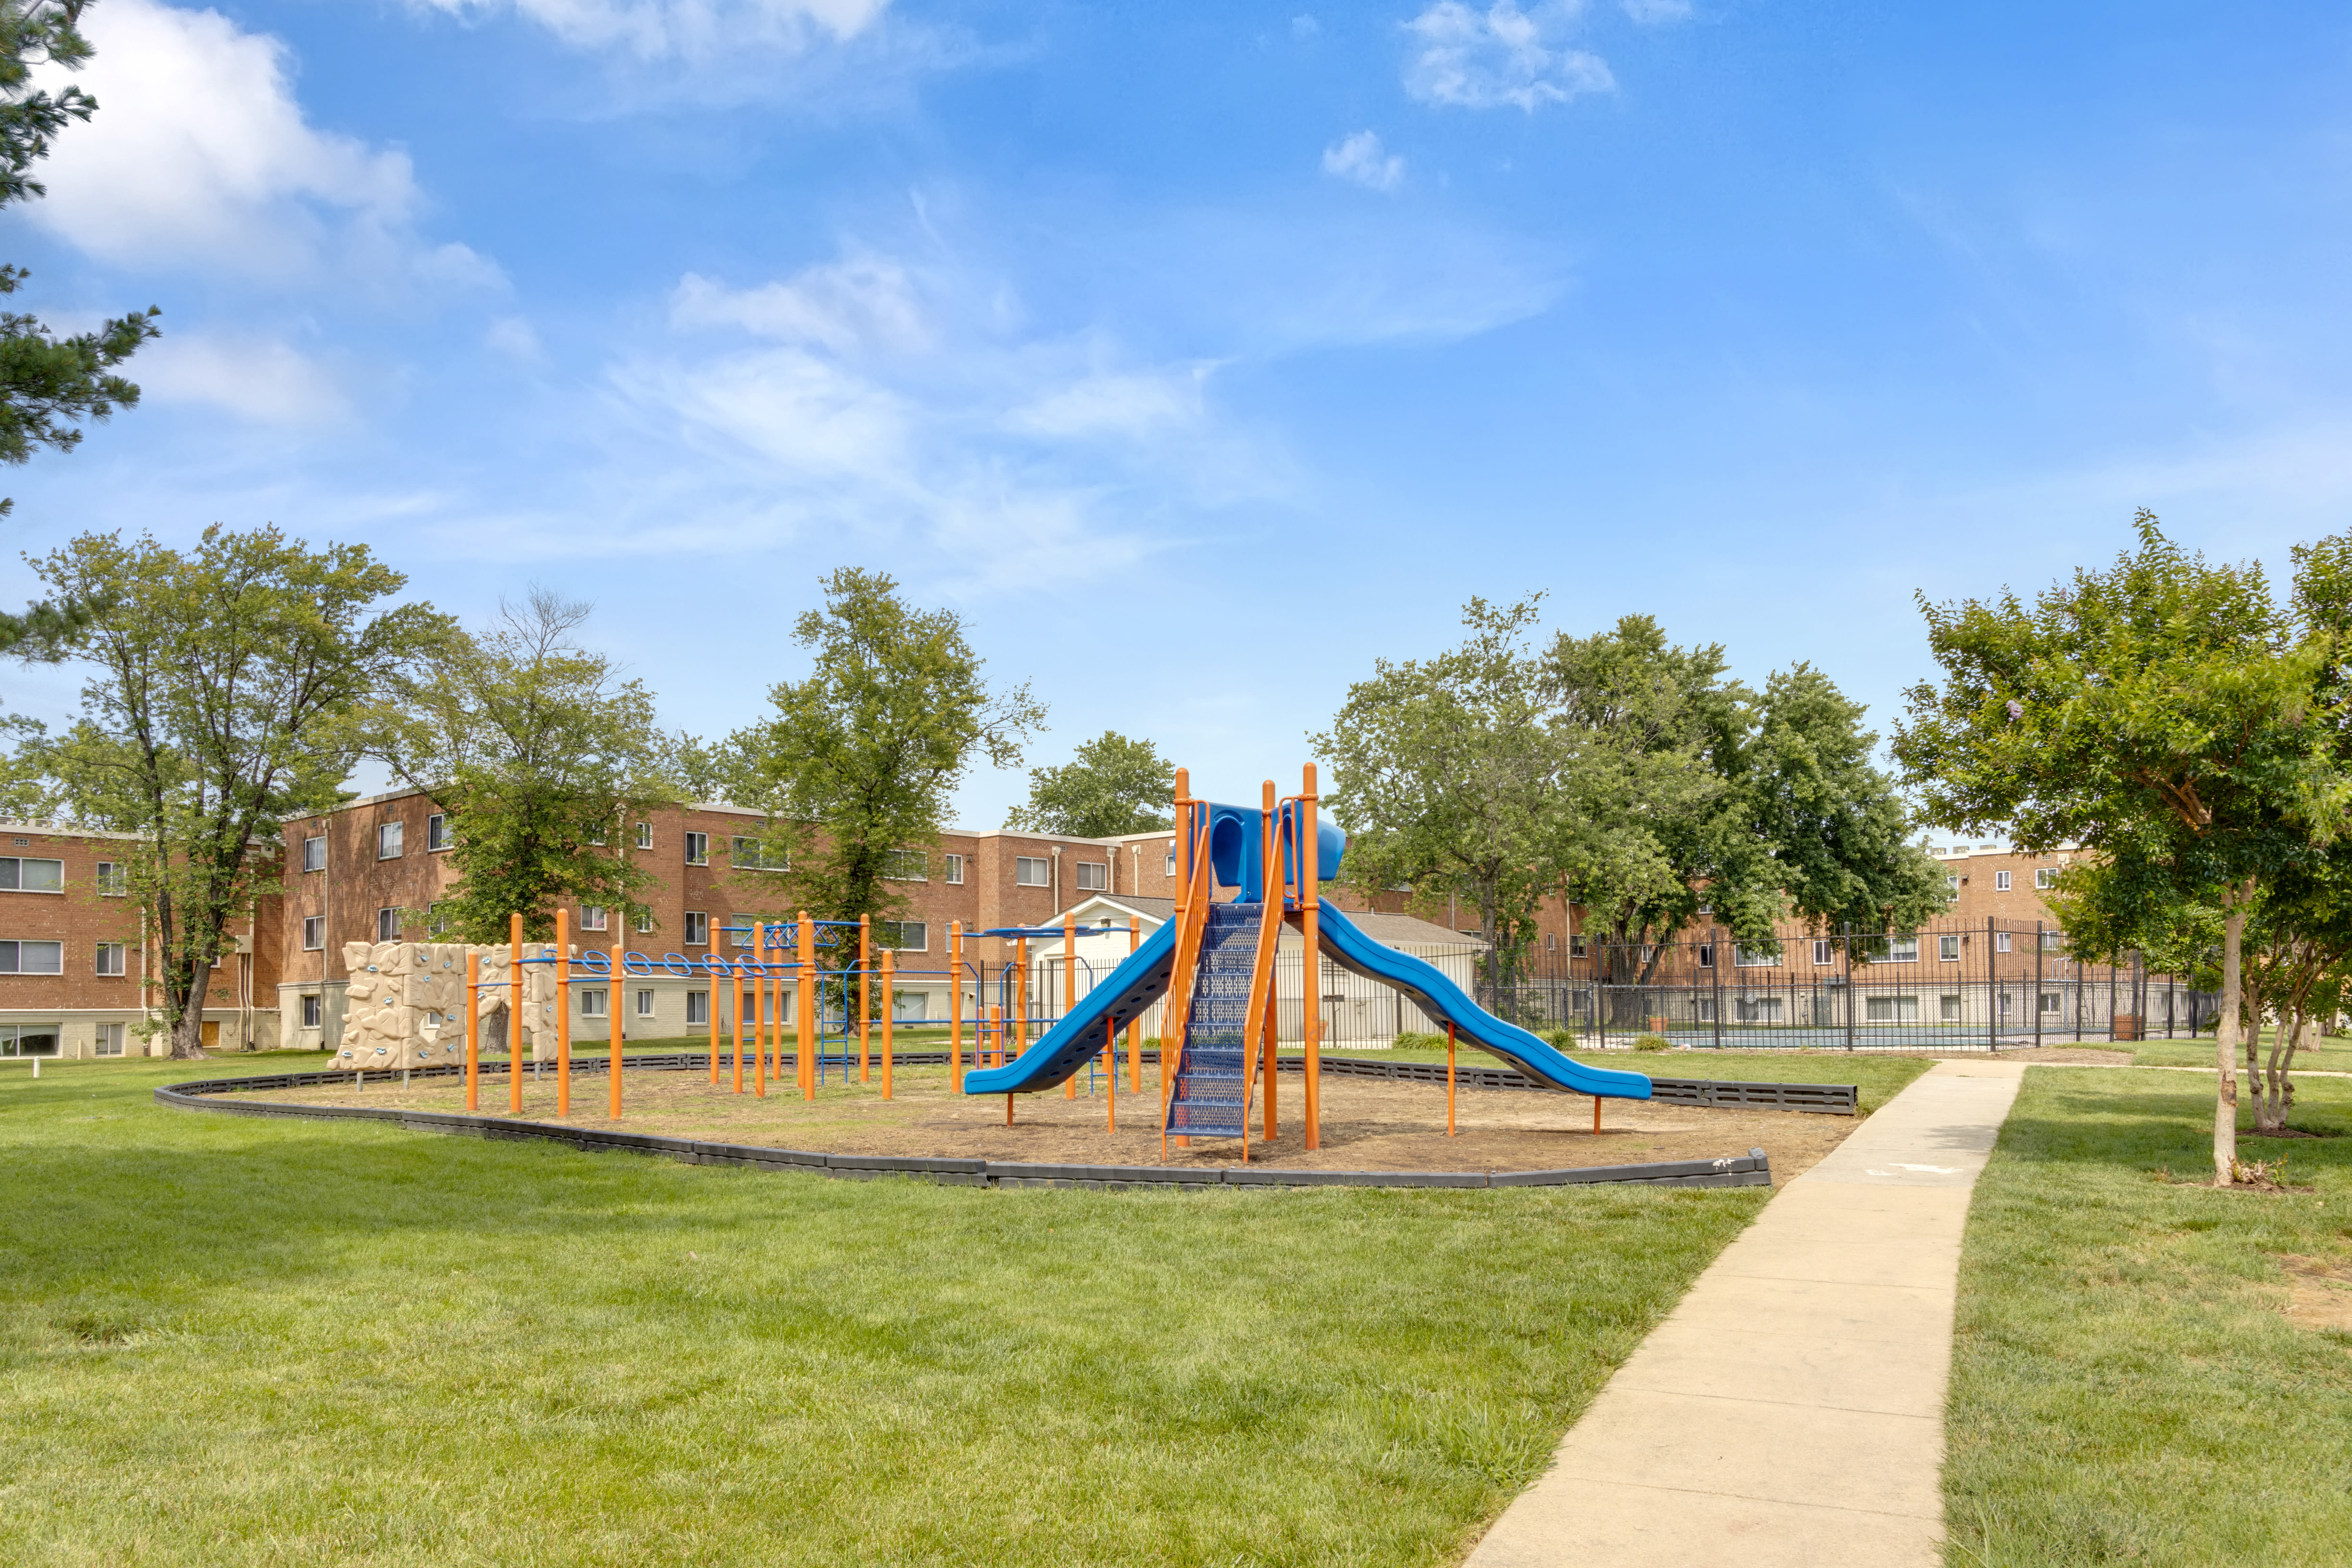 Playground, walking path, and grass field at Regency Pointe in Forestville, Maryland